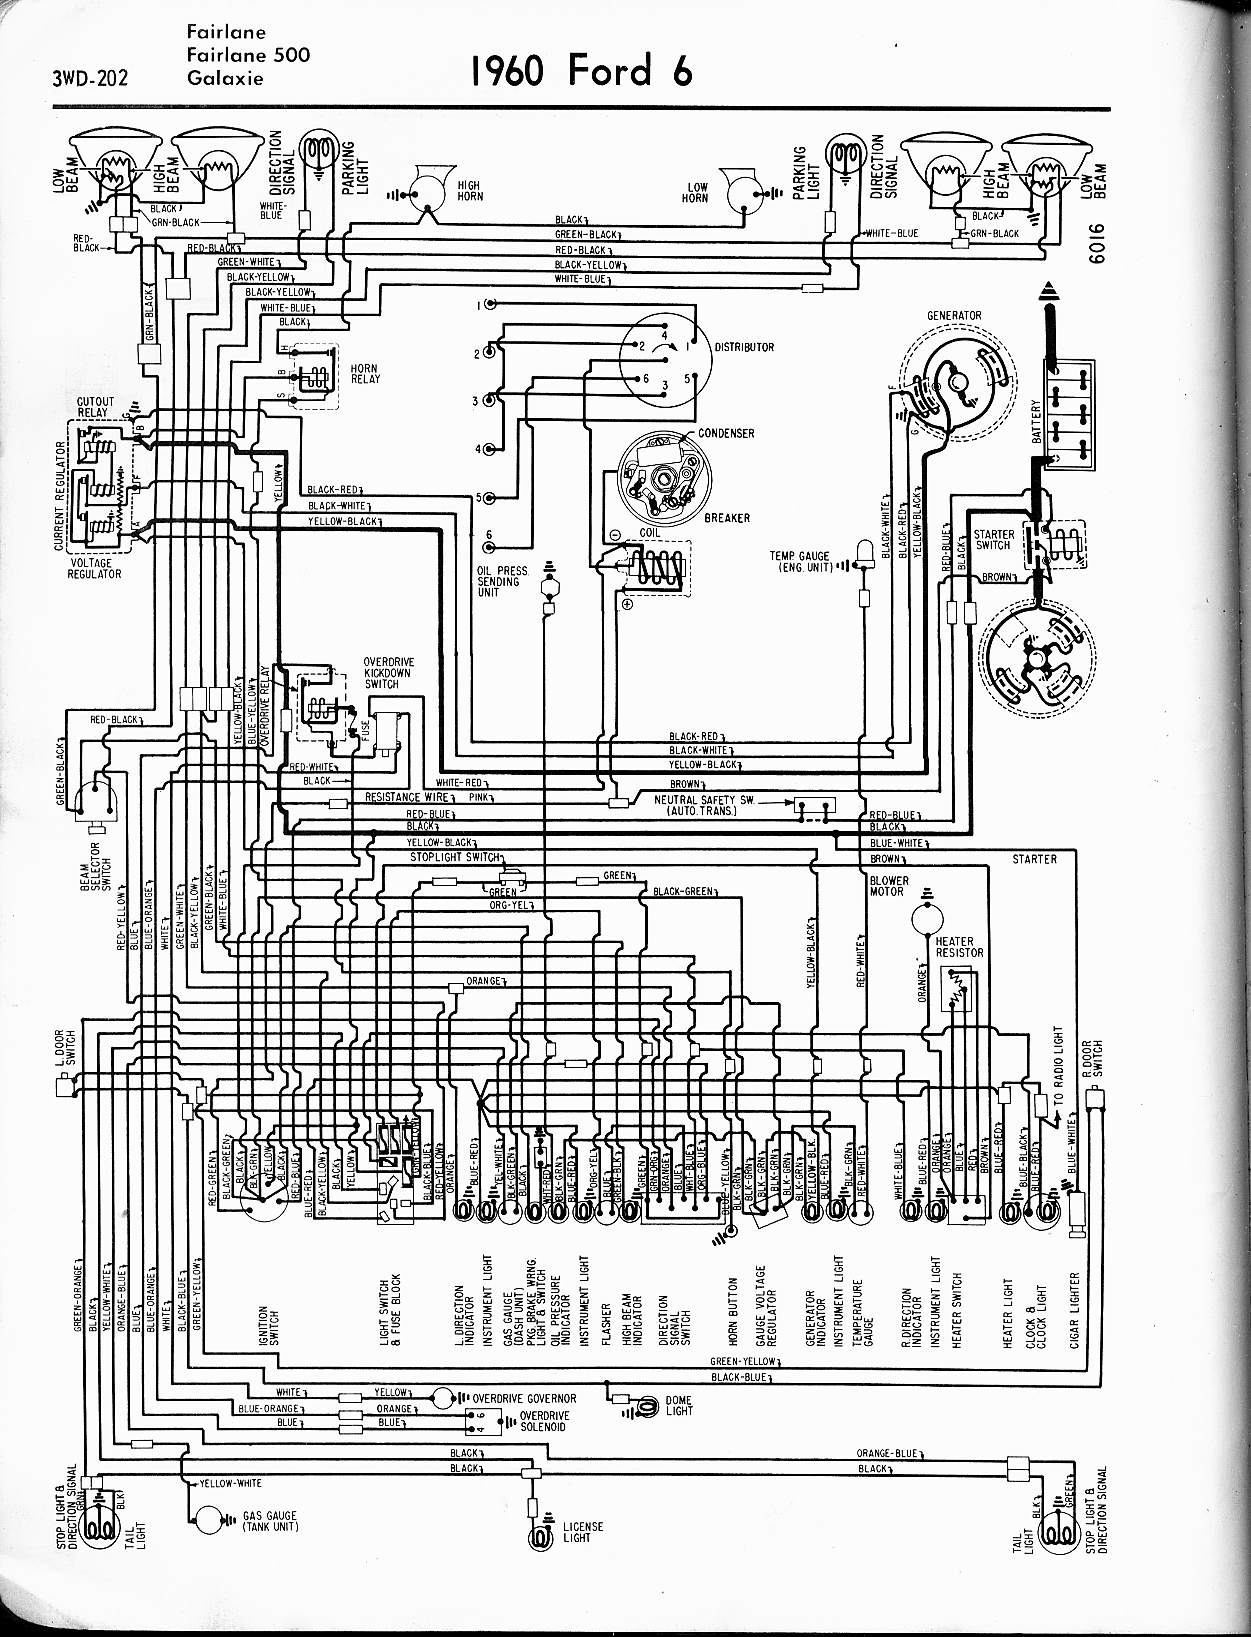 MWire5765 202 57 65 ford wiring diagrams 1965 thunderbird wiring harness at alyssarenee.co